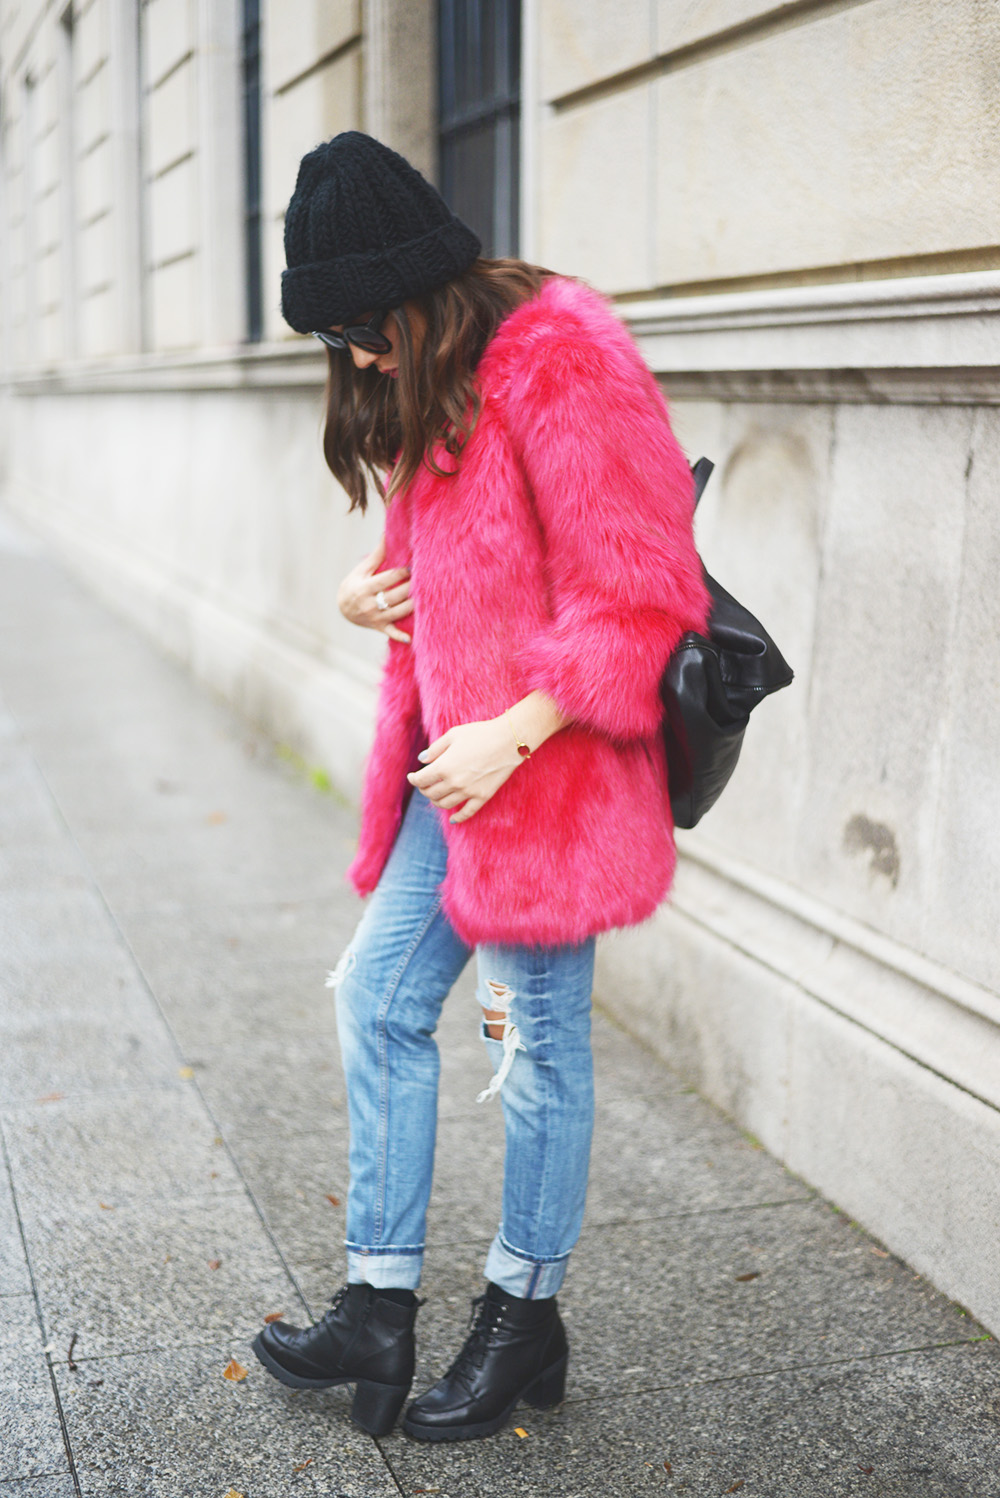 Carla Estévez Marcos is wearing a pink faux fur fluffy coat from Madrid Store